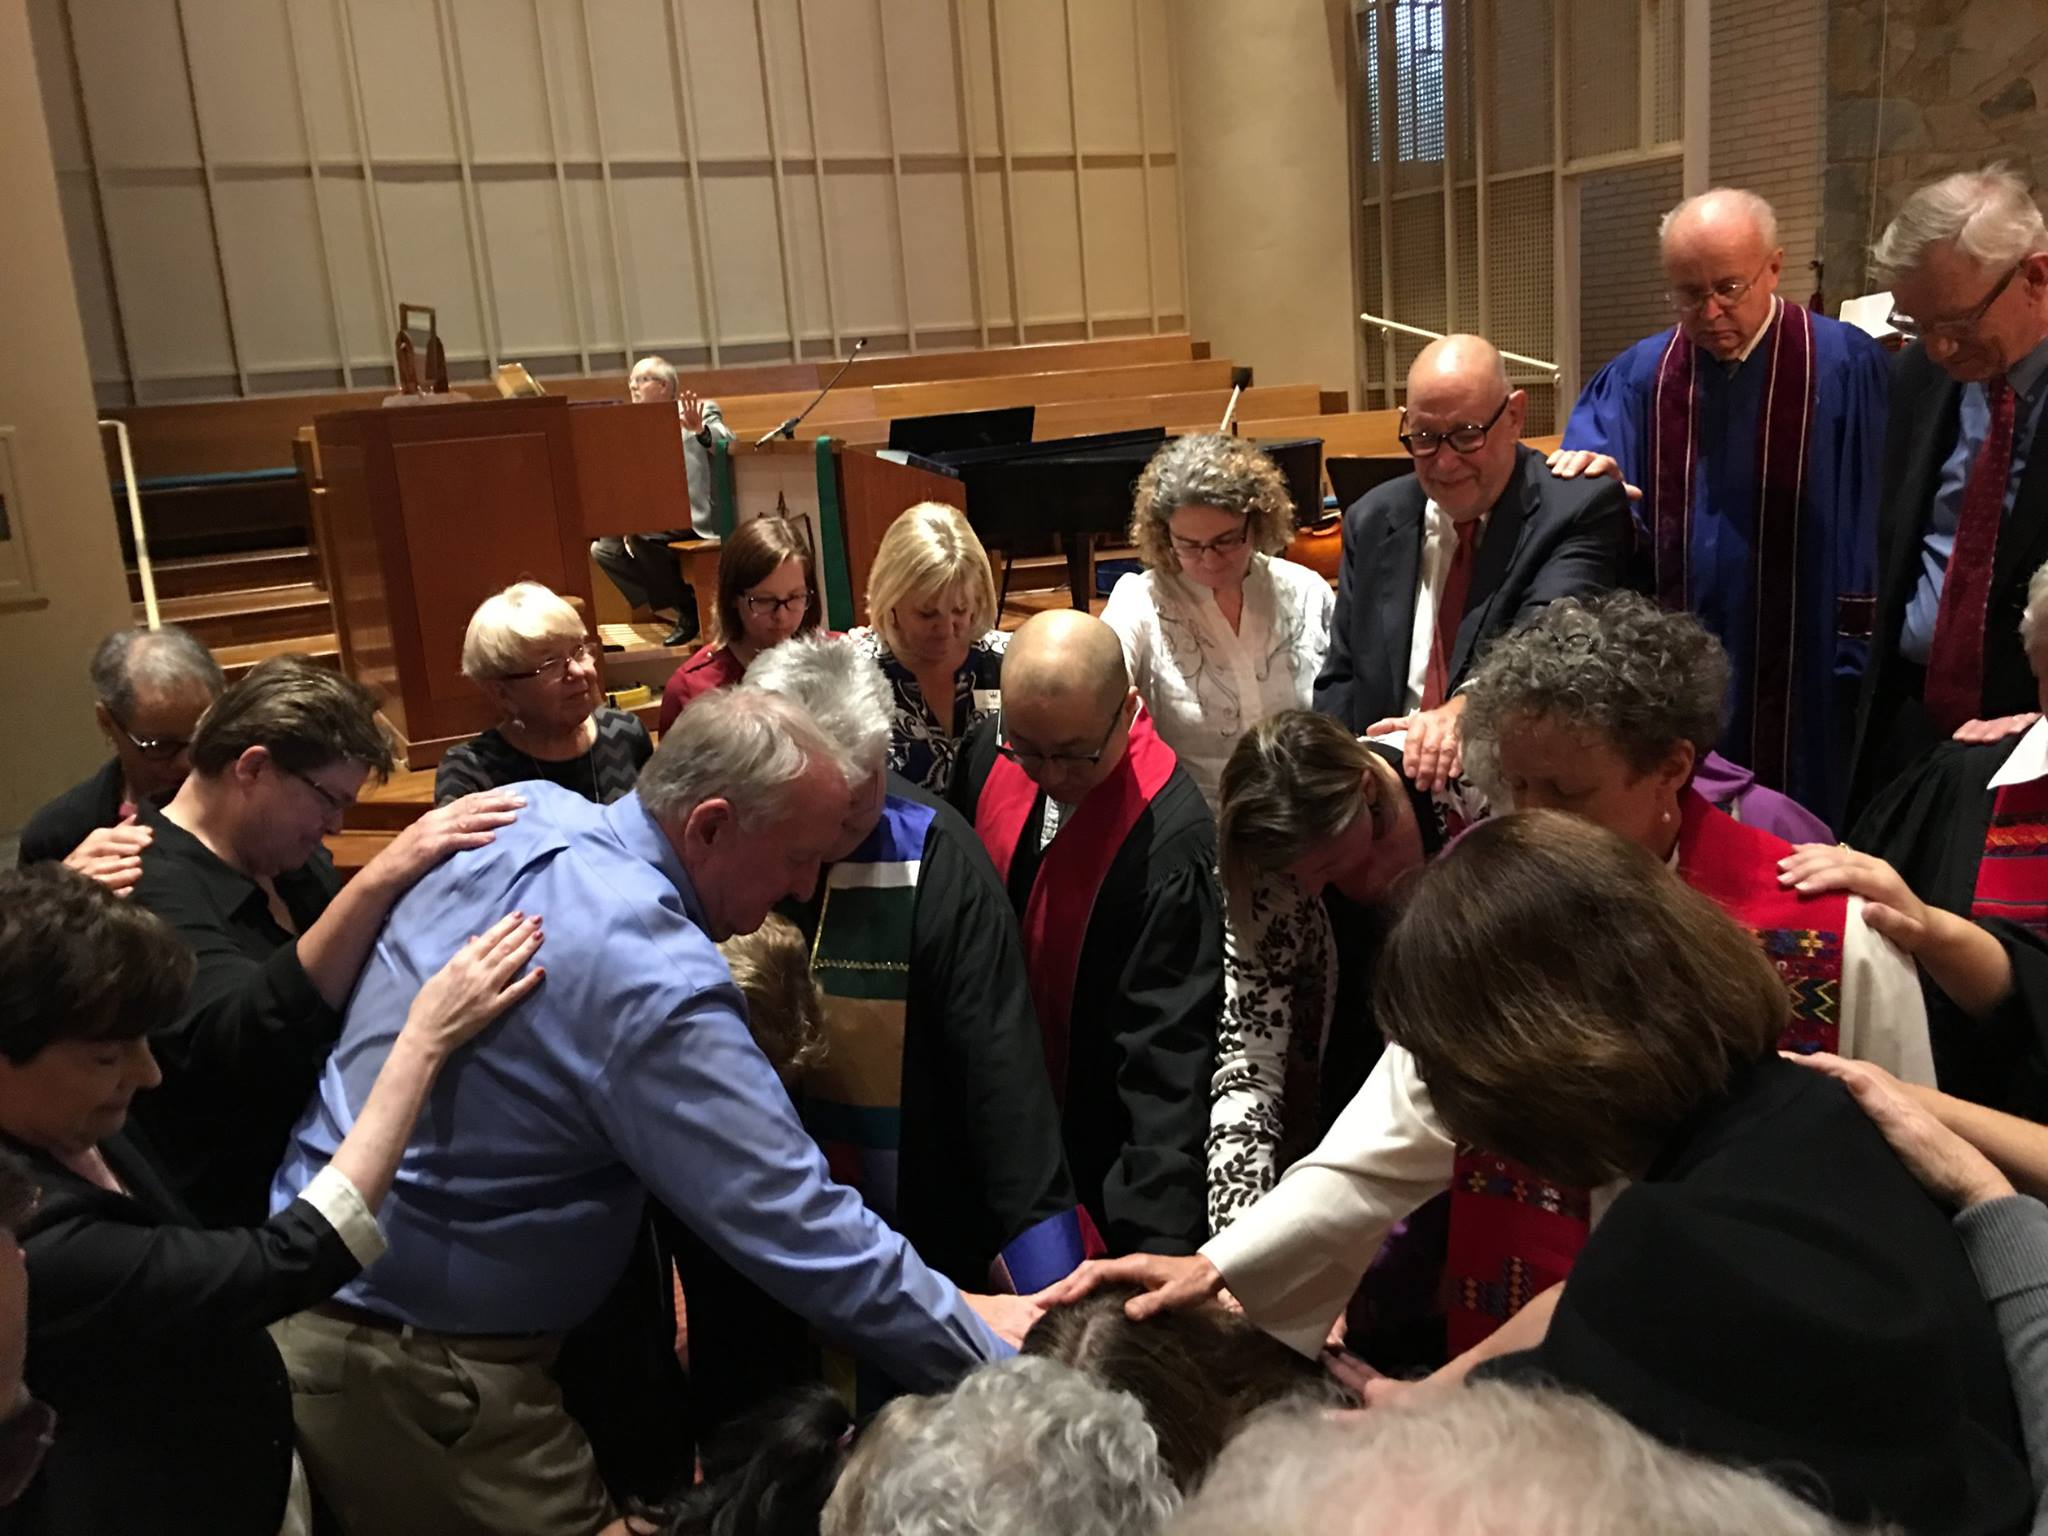 claremont-presbyterian-church-sunday-service-blessing.jpg